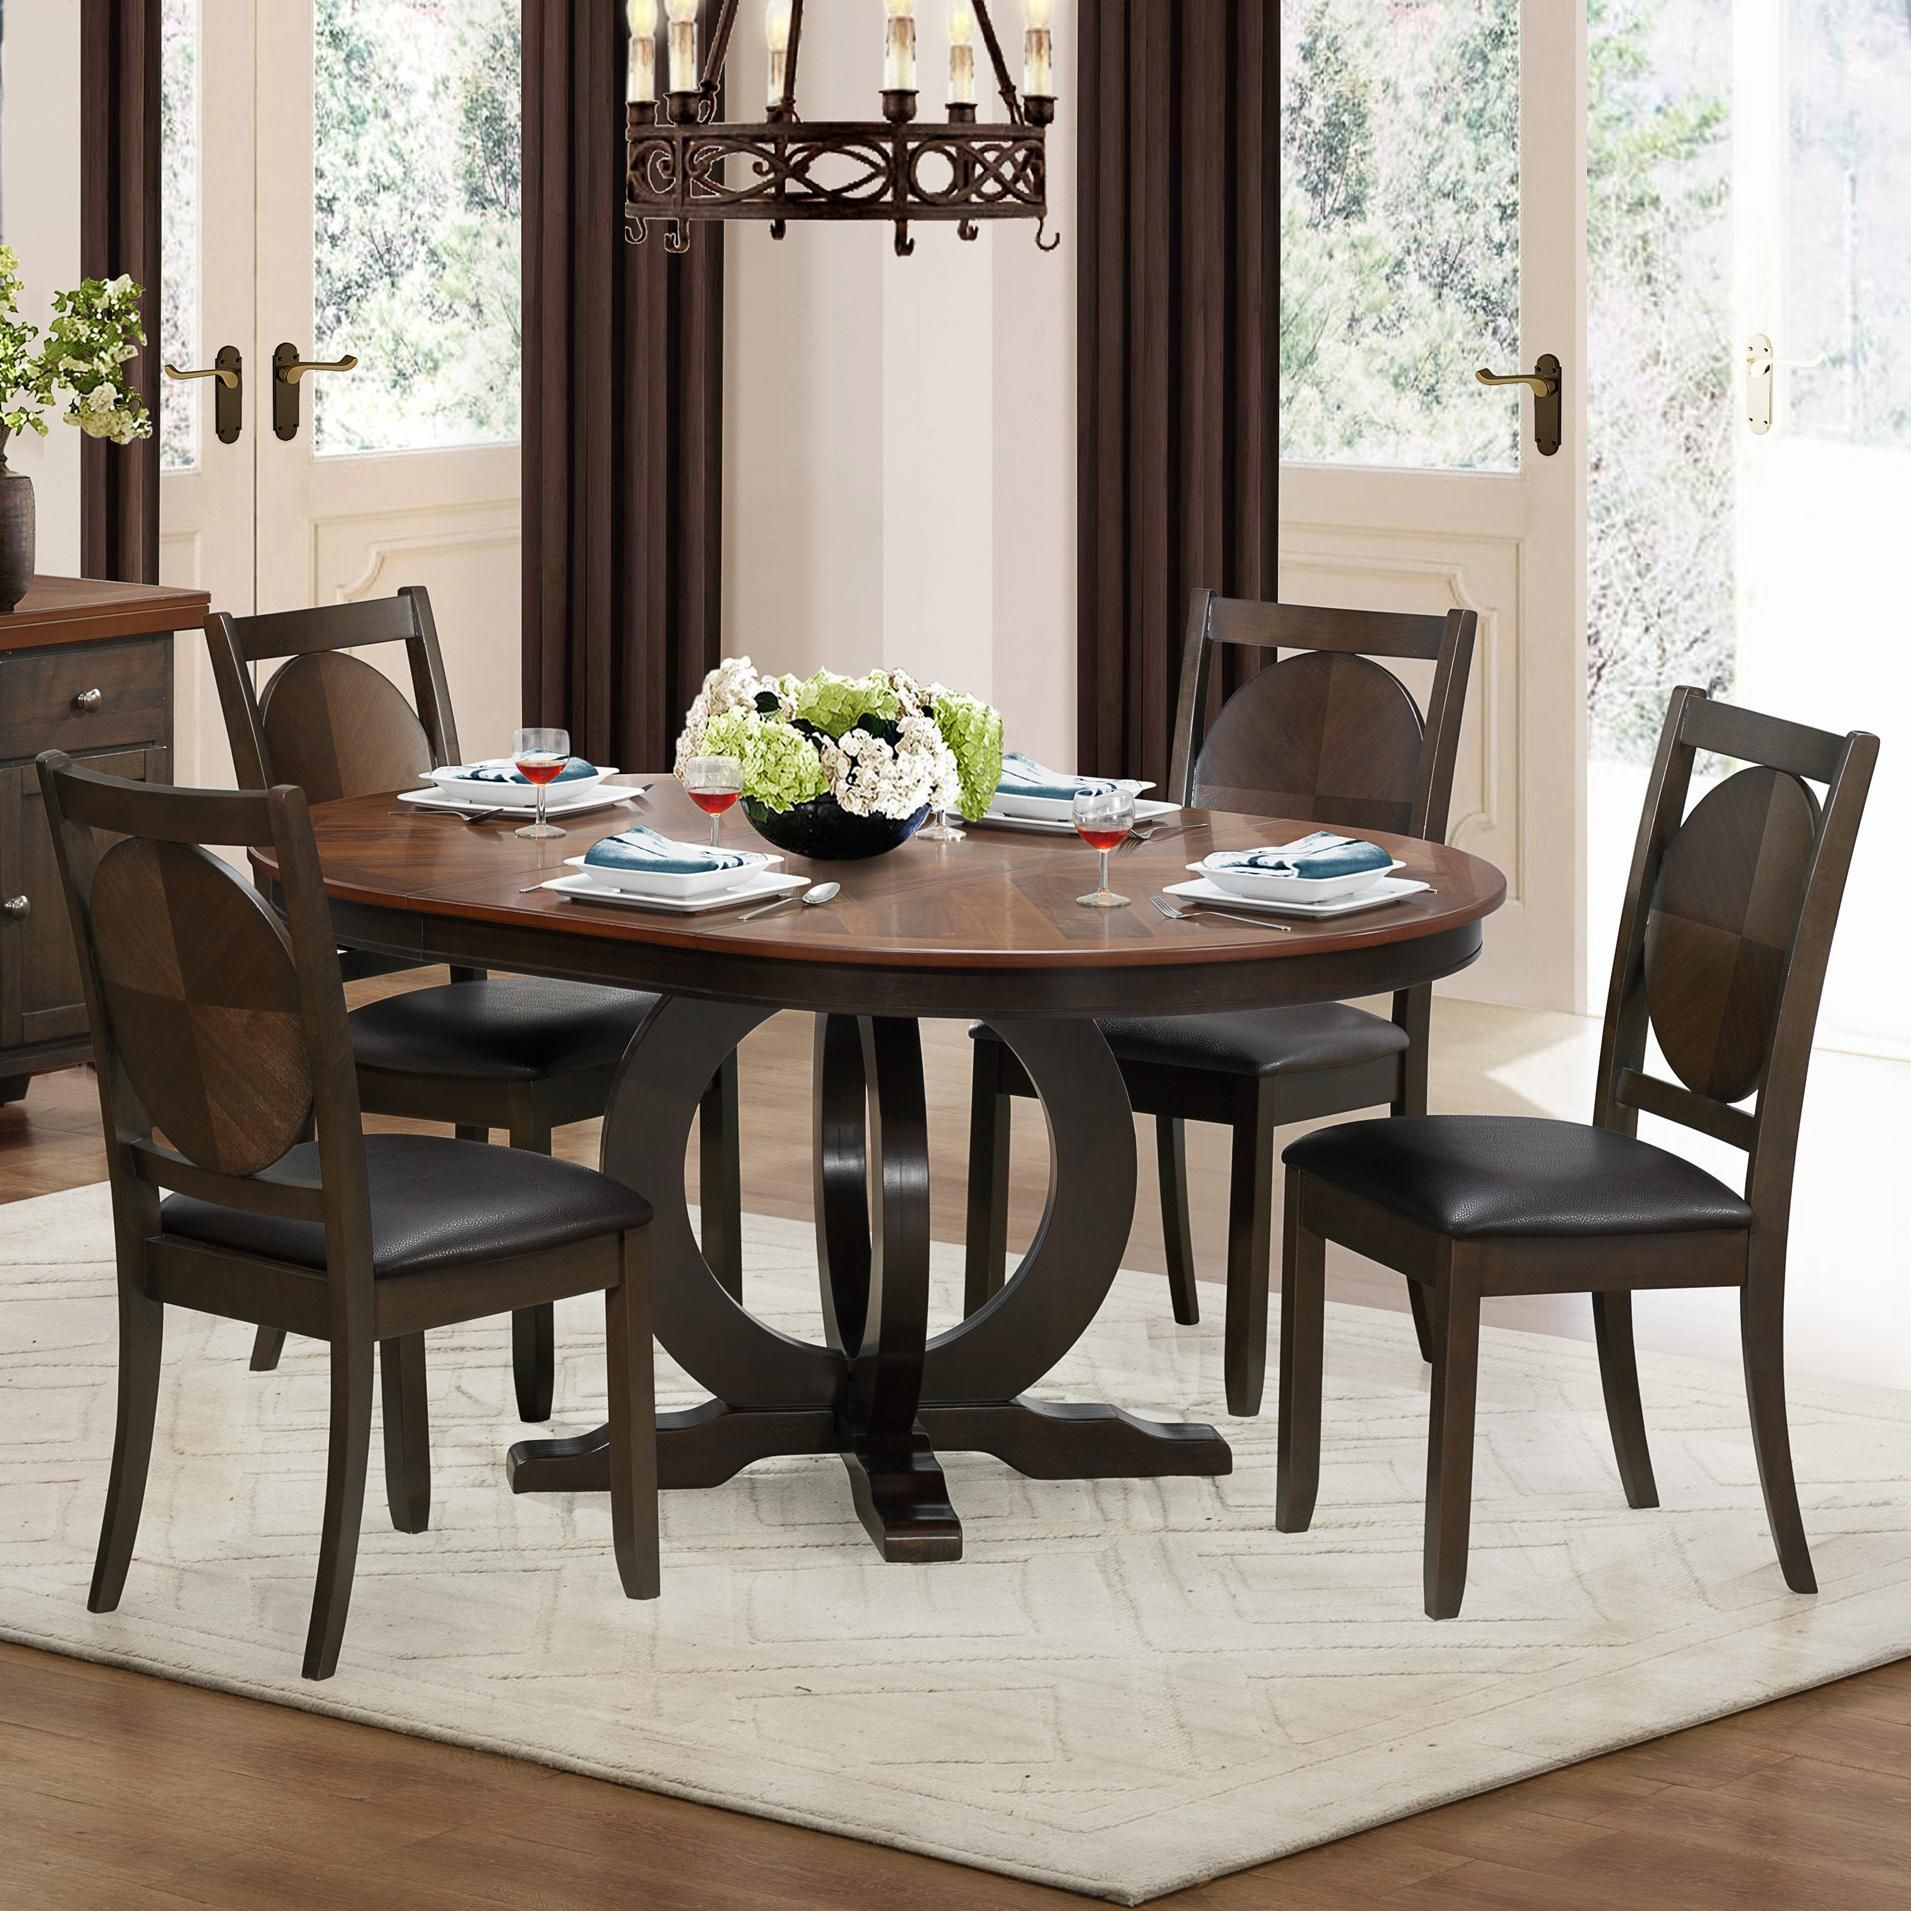 5111 5 Piece Dining Set With Round Table By Homelegance At Del Sol Furniture